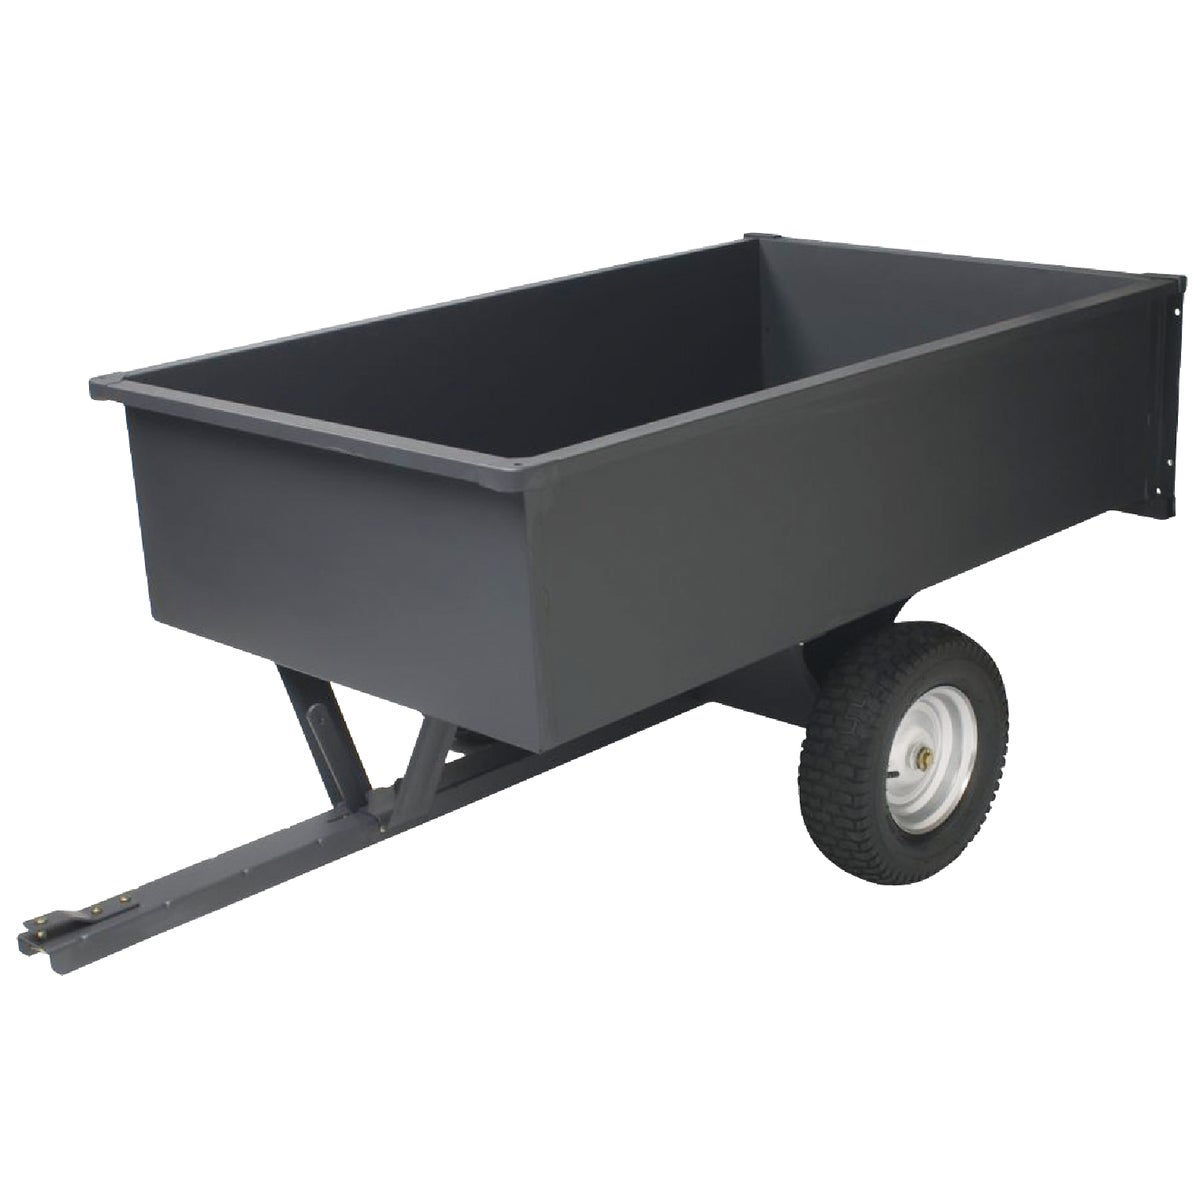 17CU FT DUMP CART - LC1700GY by Precision Prod Inc